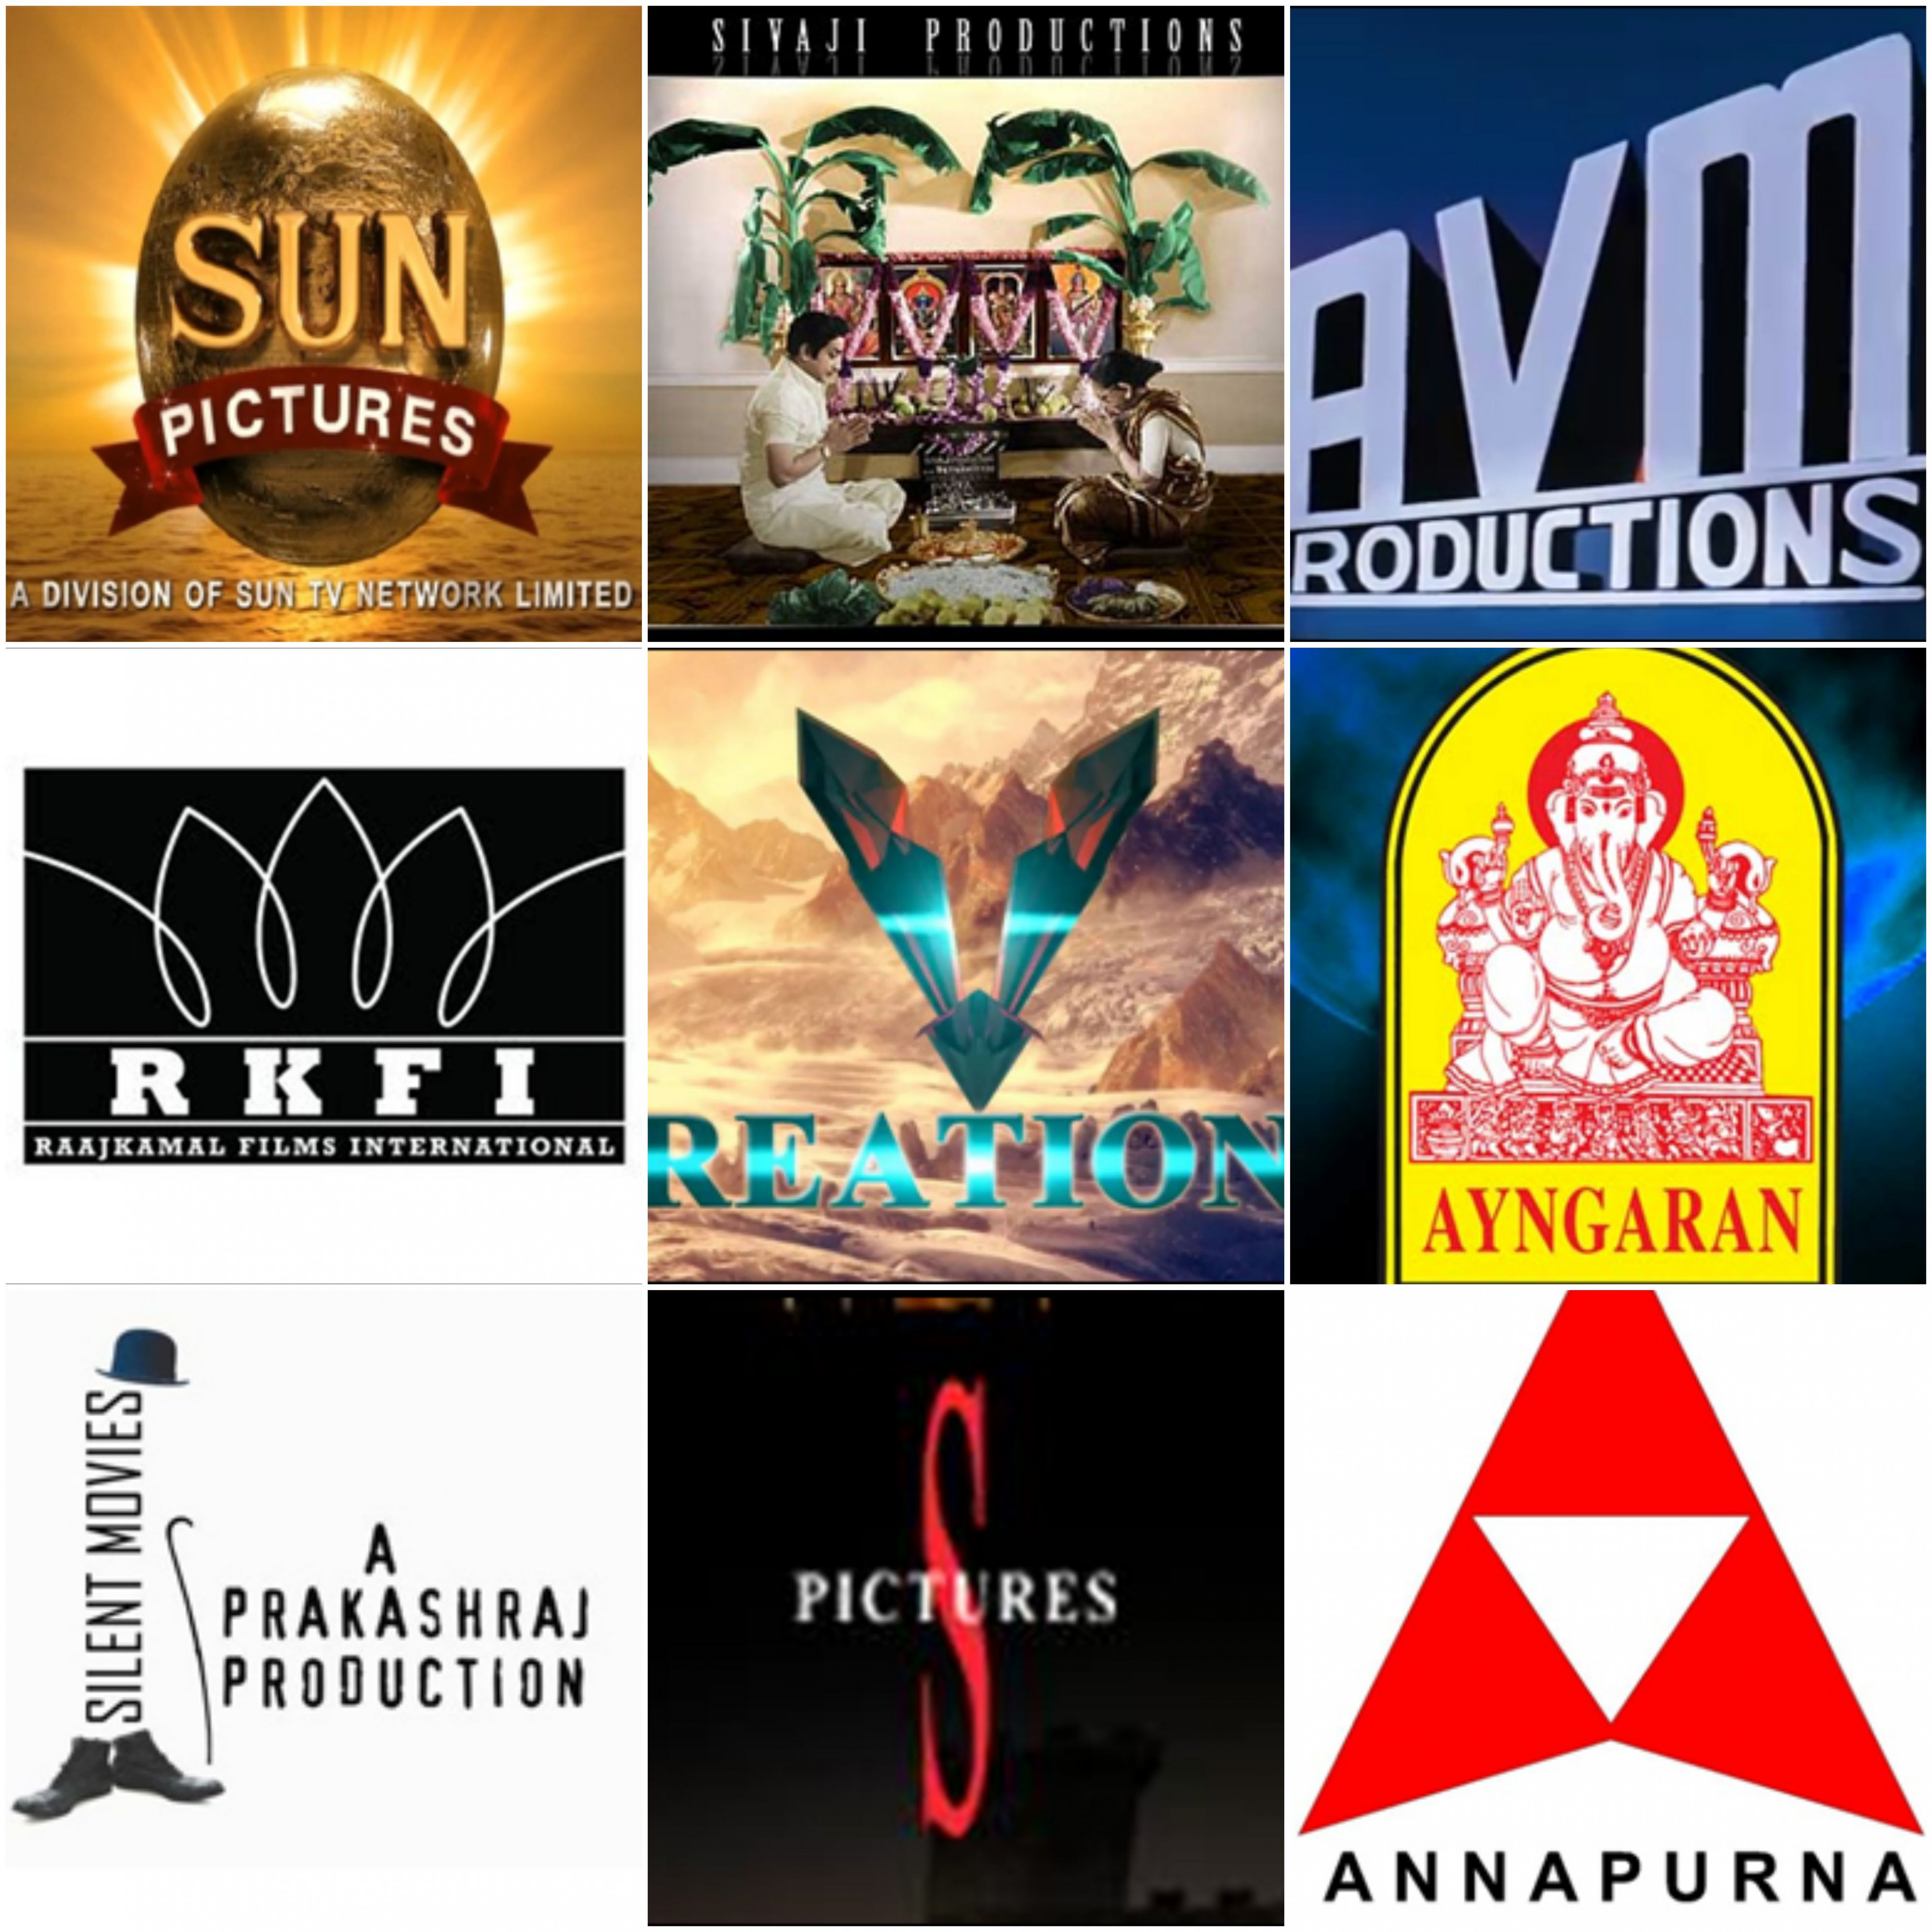 Top 10 Production Houses Of Tollywood | Nettv4u.com